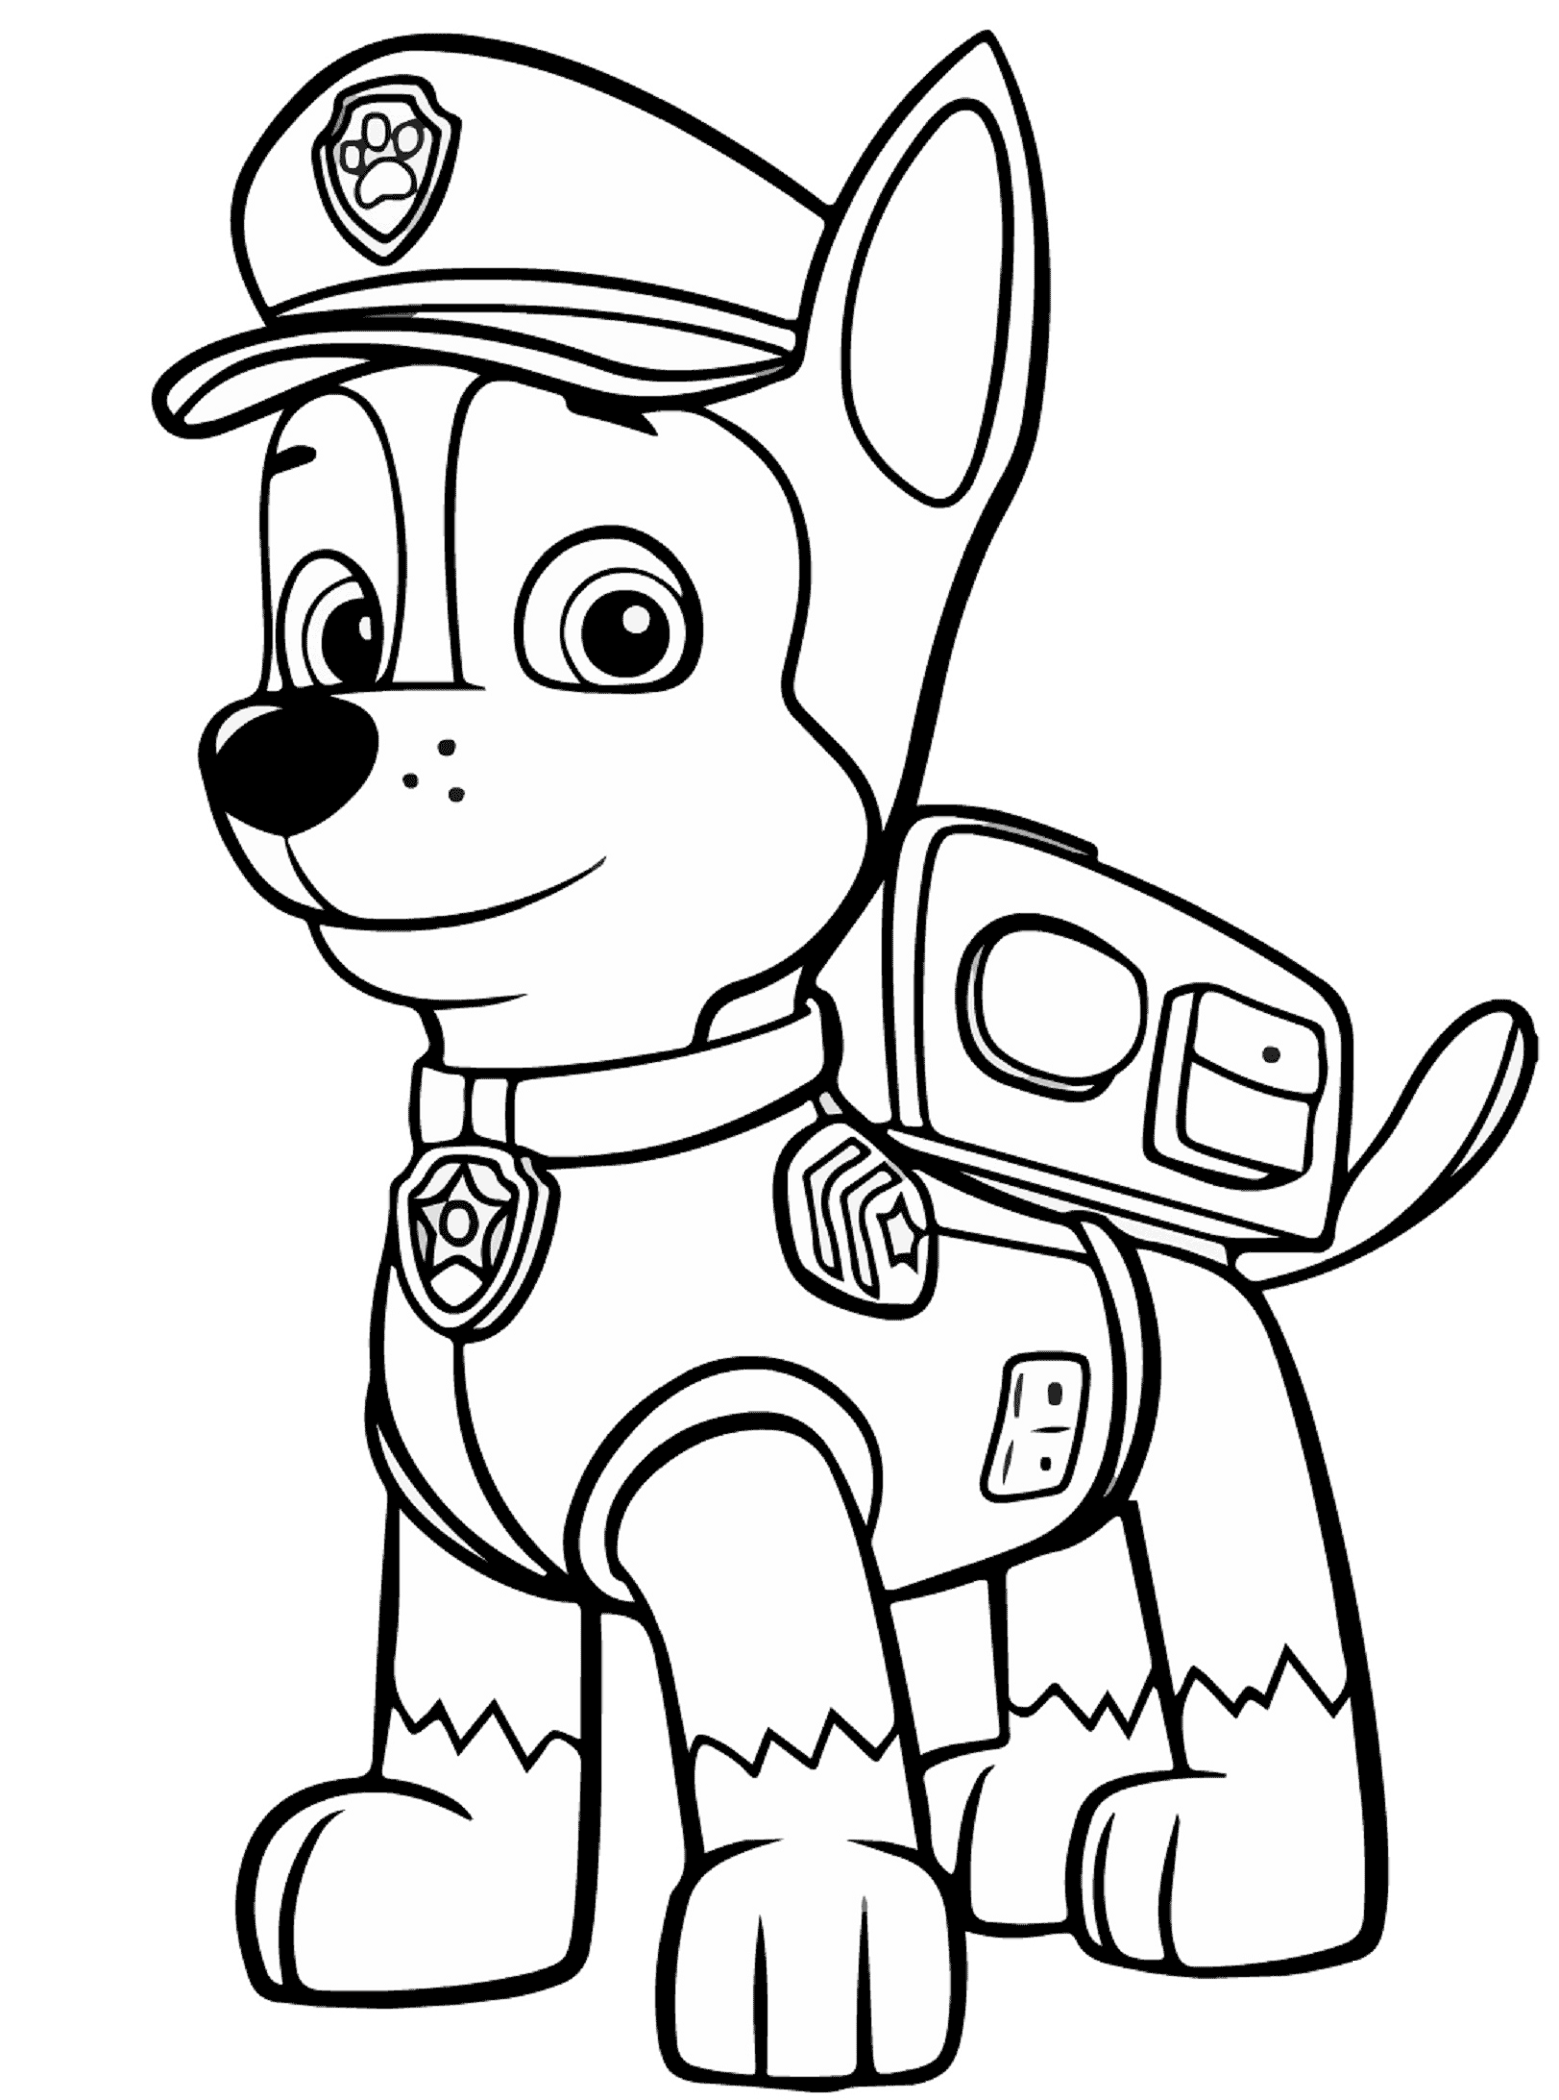 paw patrol coloring book chase paw patrol coloring pages to download and print for free coloring book patrol paw